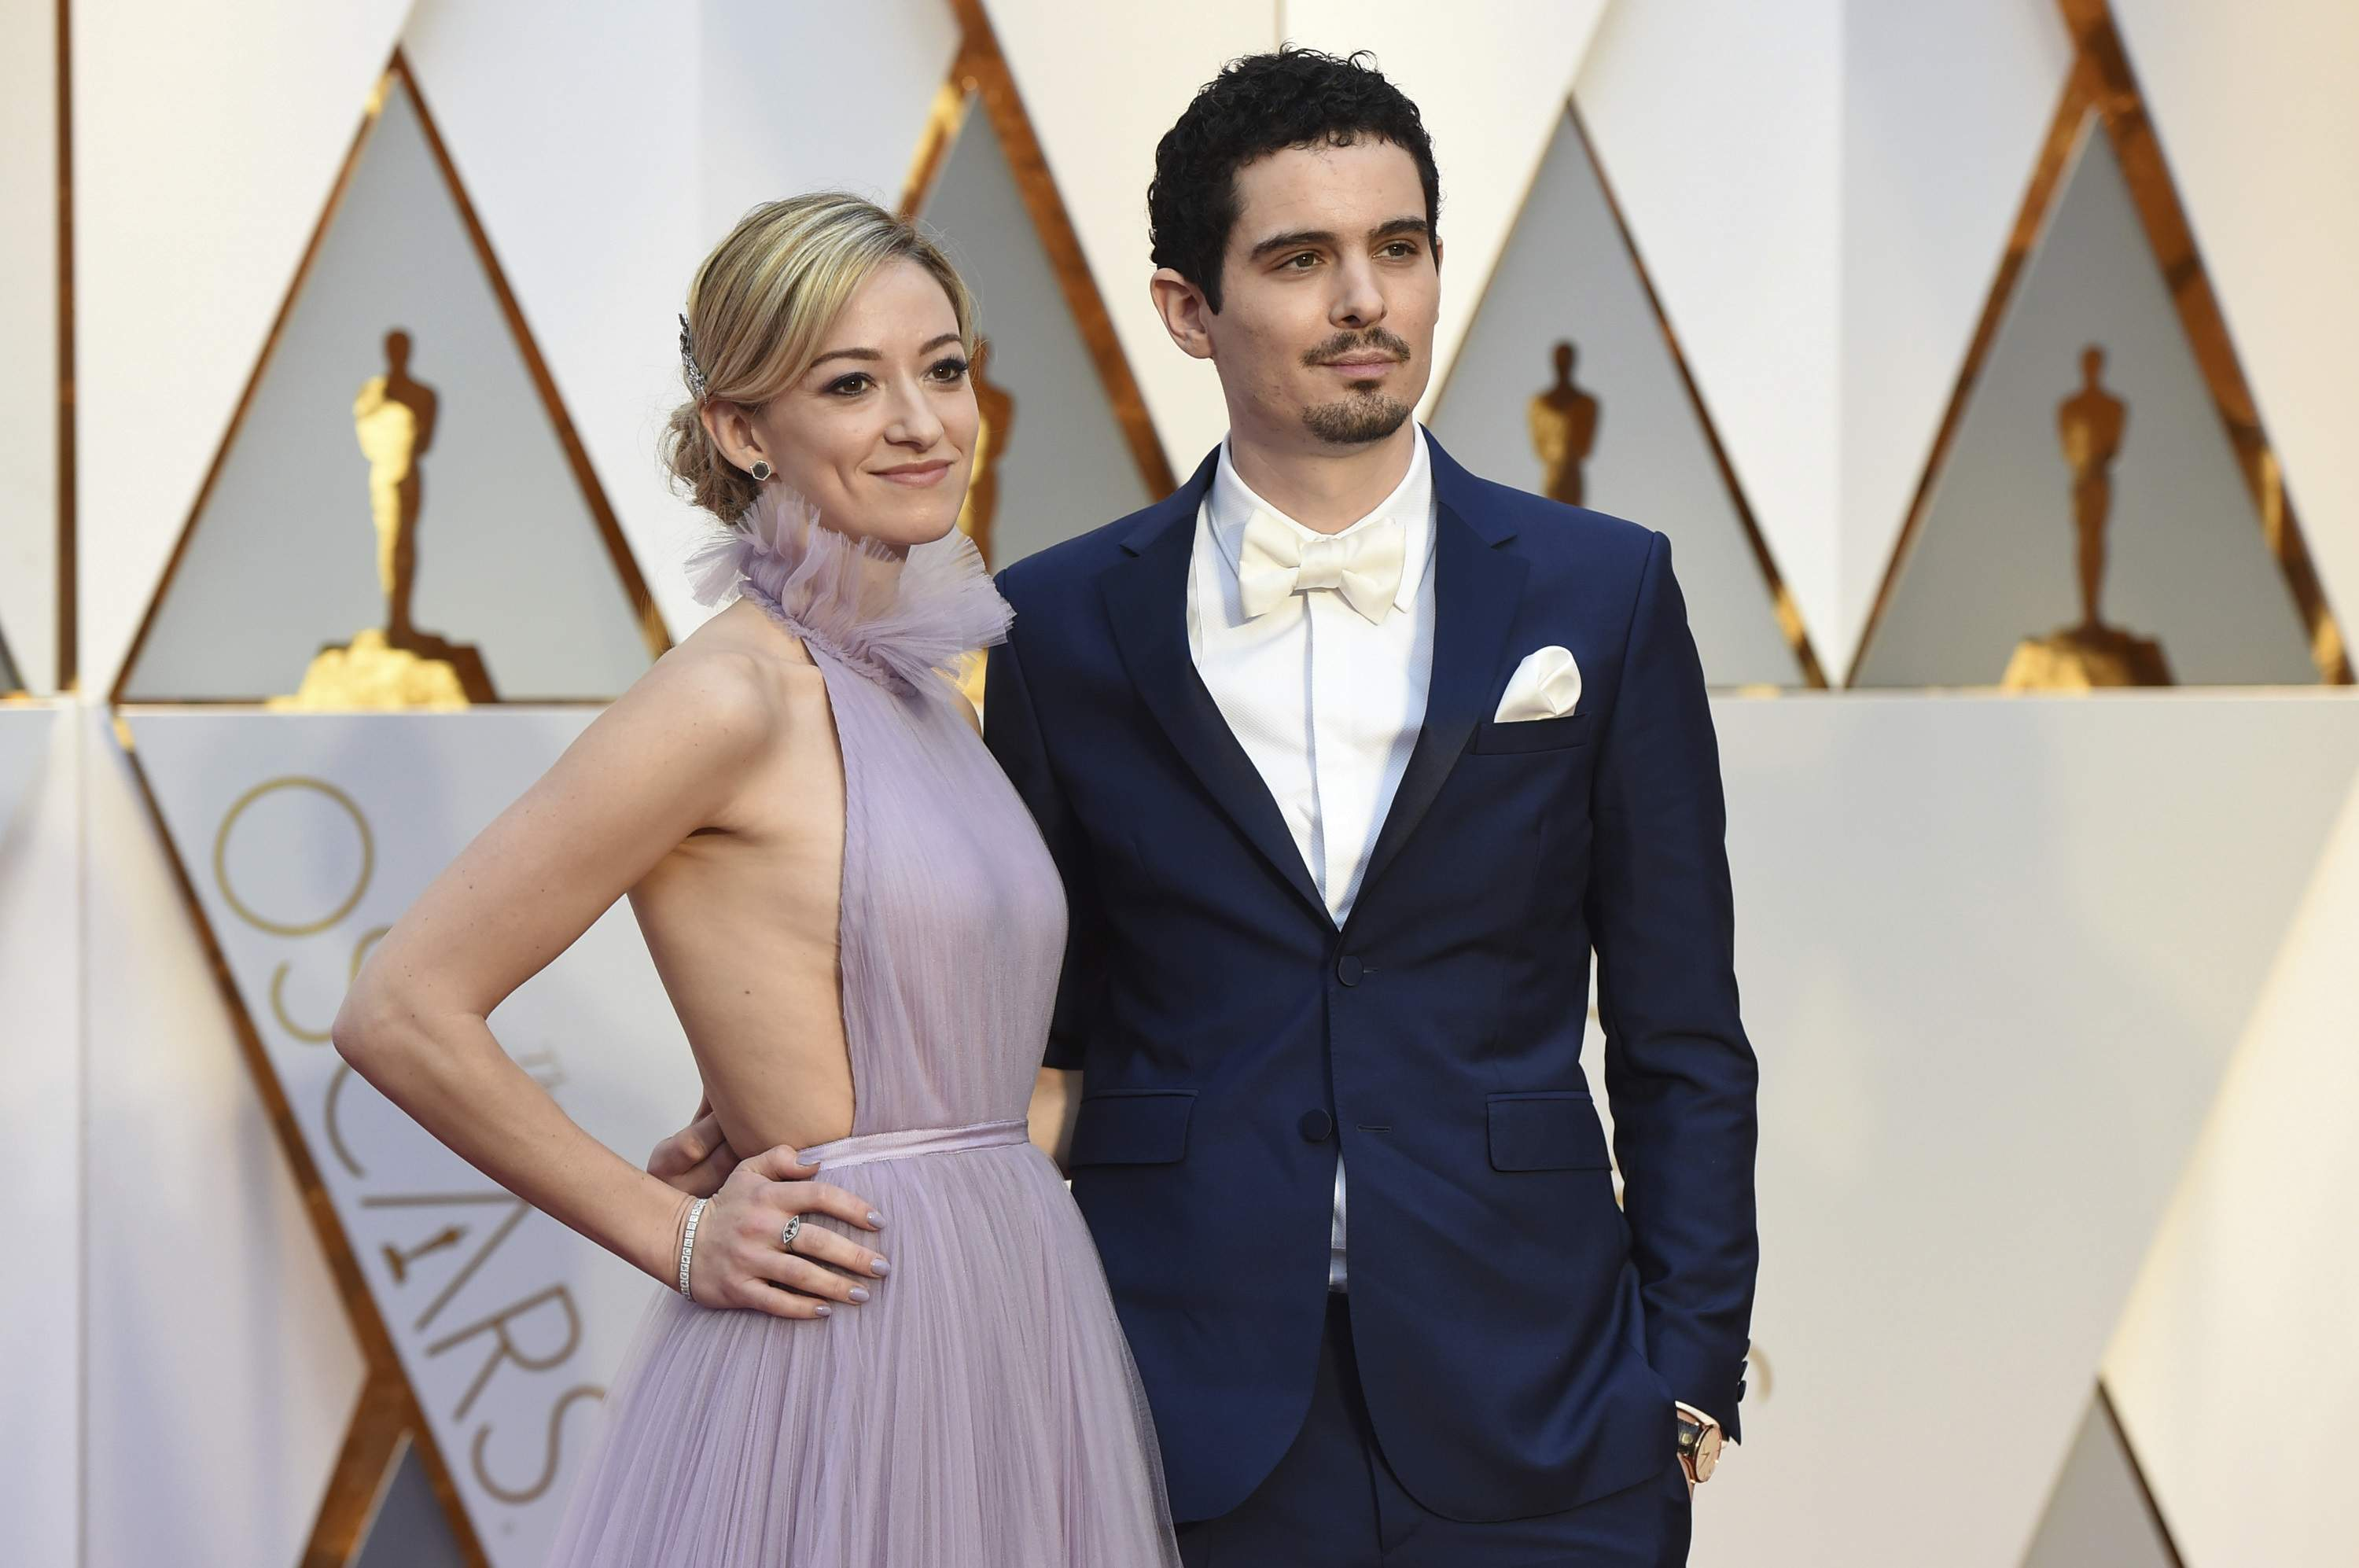 Olivia Hamilton, left, and Damien Chazelle arrive at the Oscars on Sunday, Feb. 26, 2017, at the Dolby Theatre in Los Angeles. THE ASSOCIATED PRESS